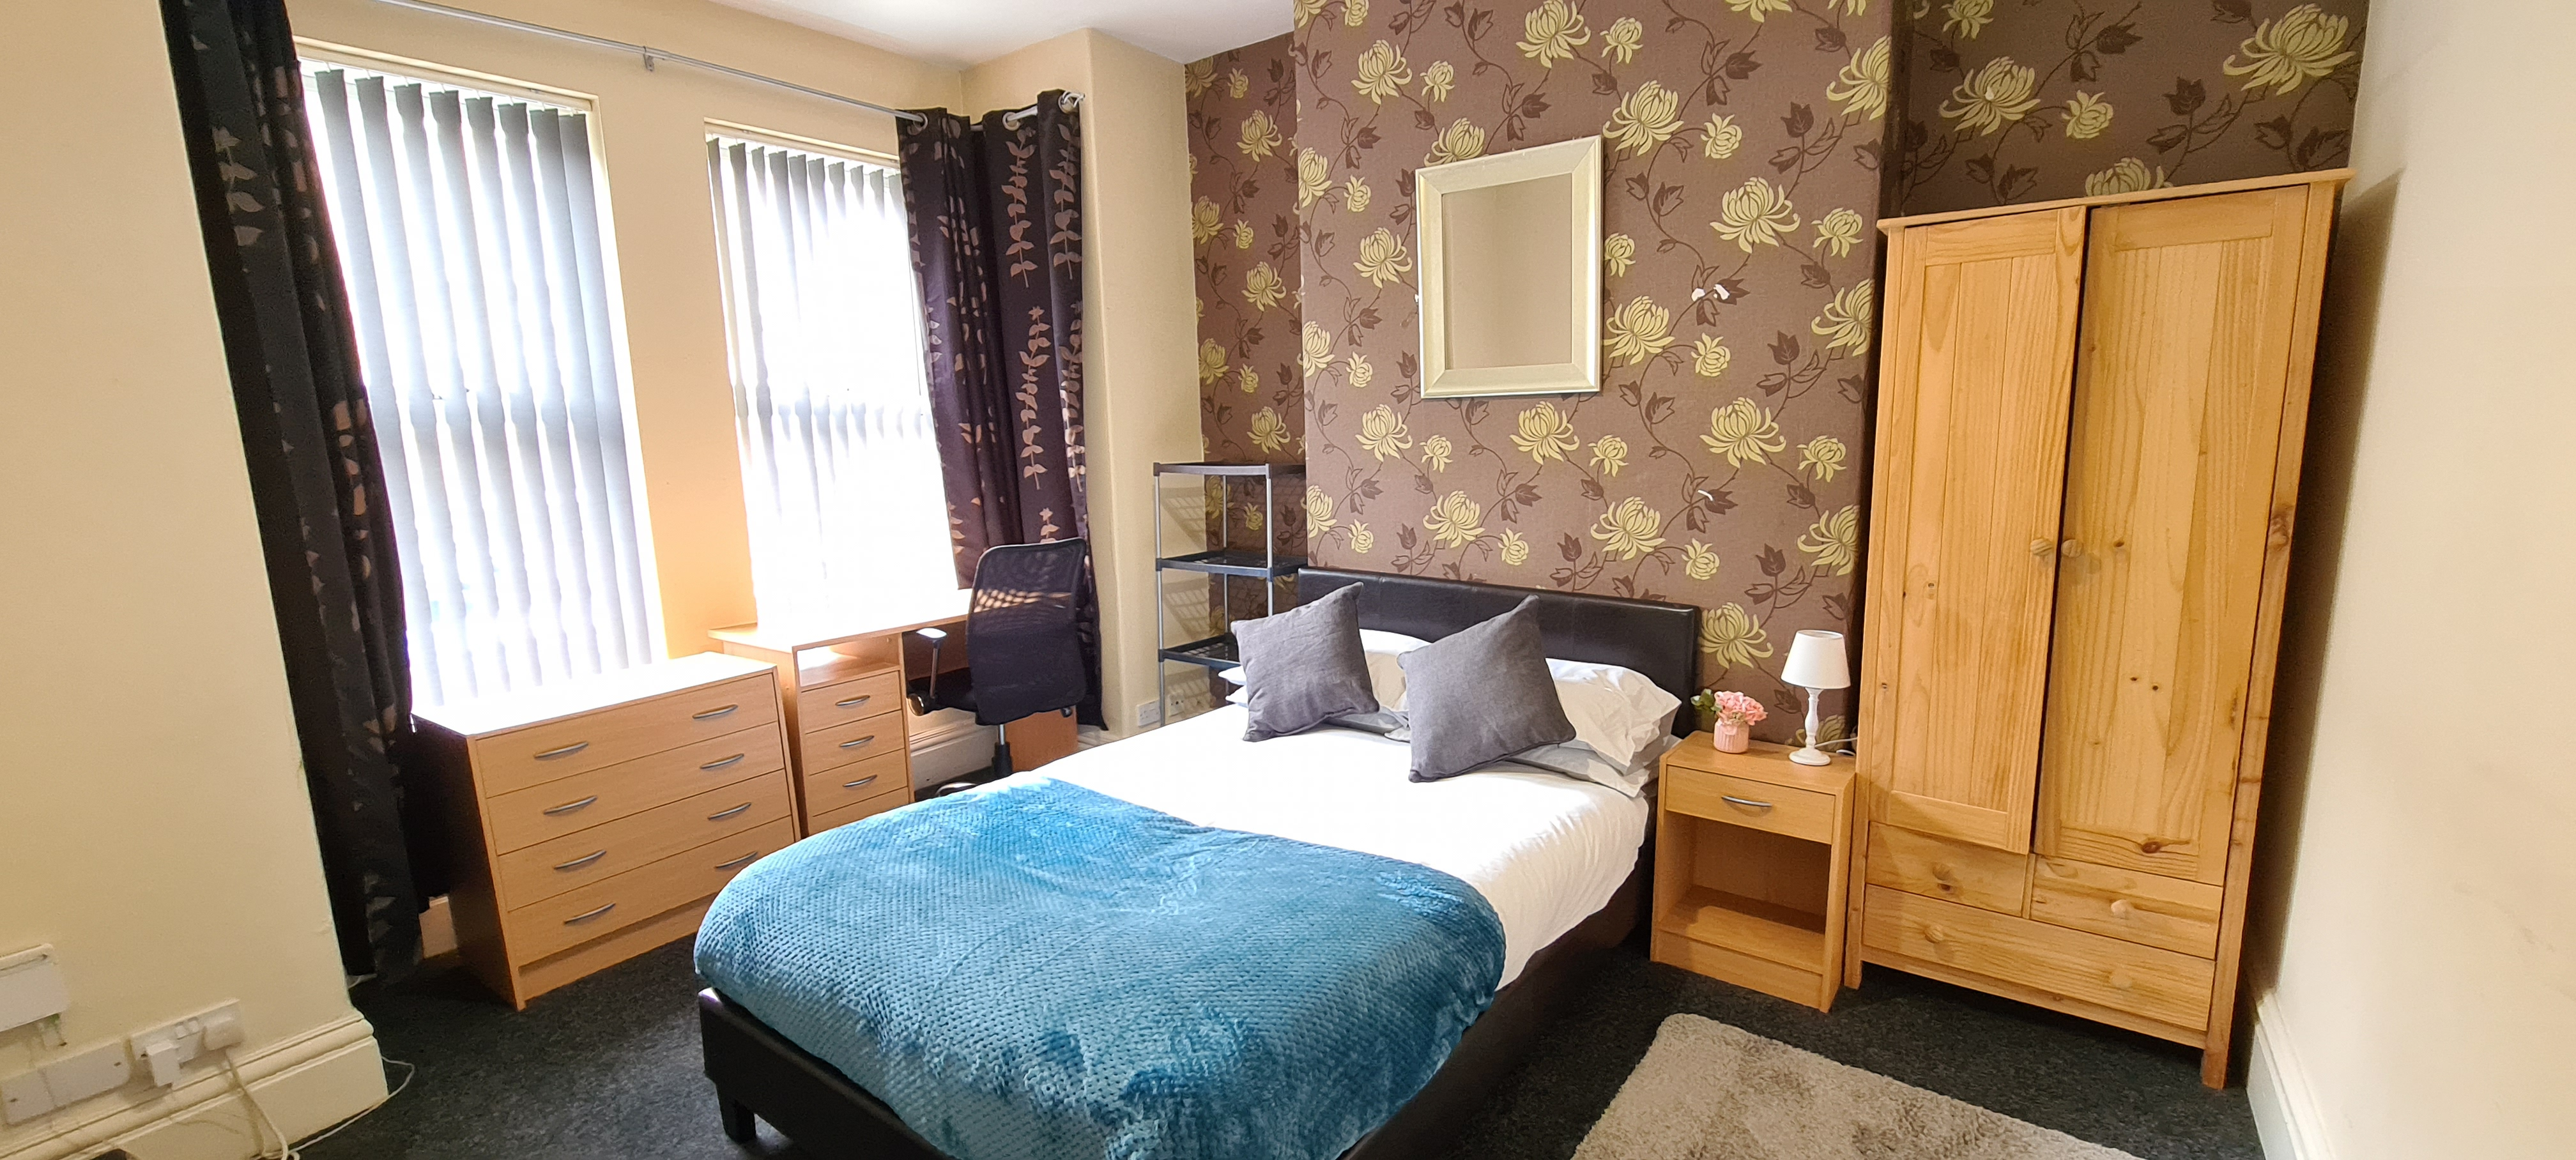 Longman Jones Student Accommodation Available academic year 21/22! Hardy Street (Ref: 1441)